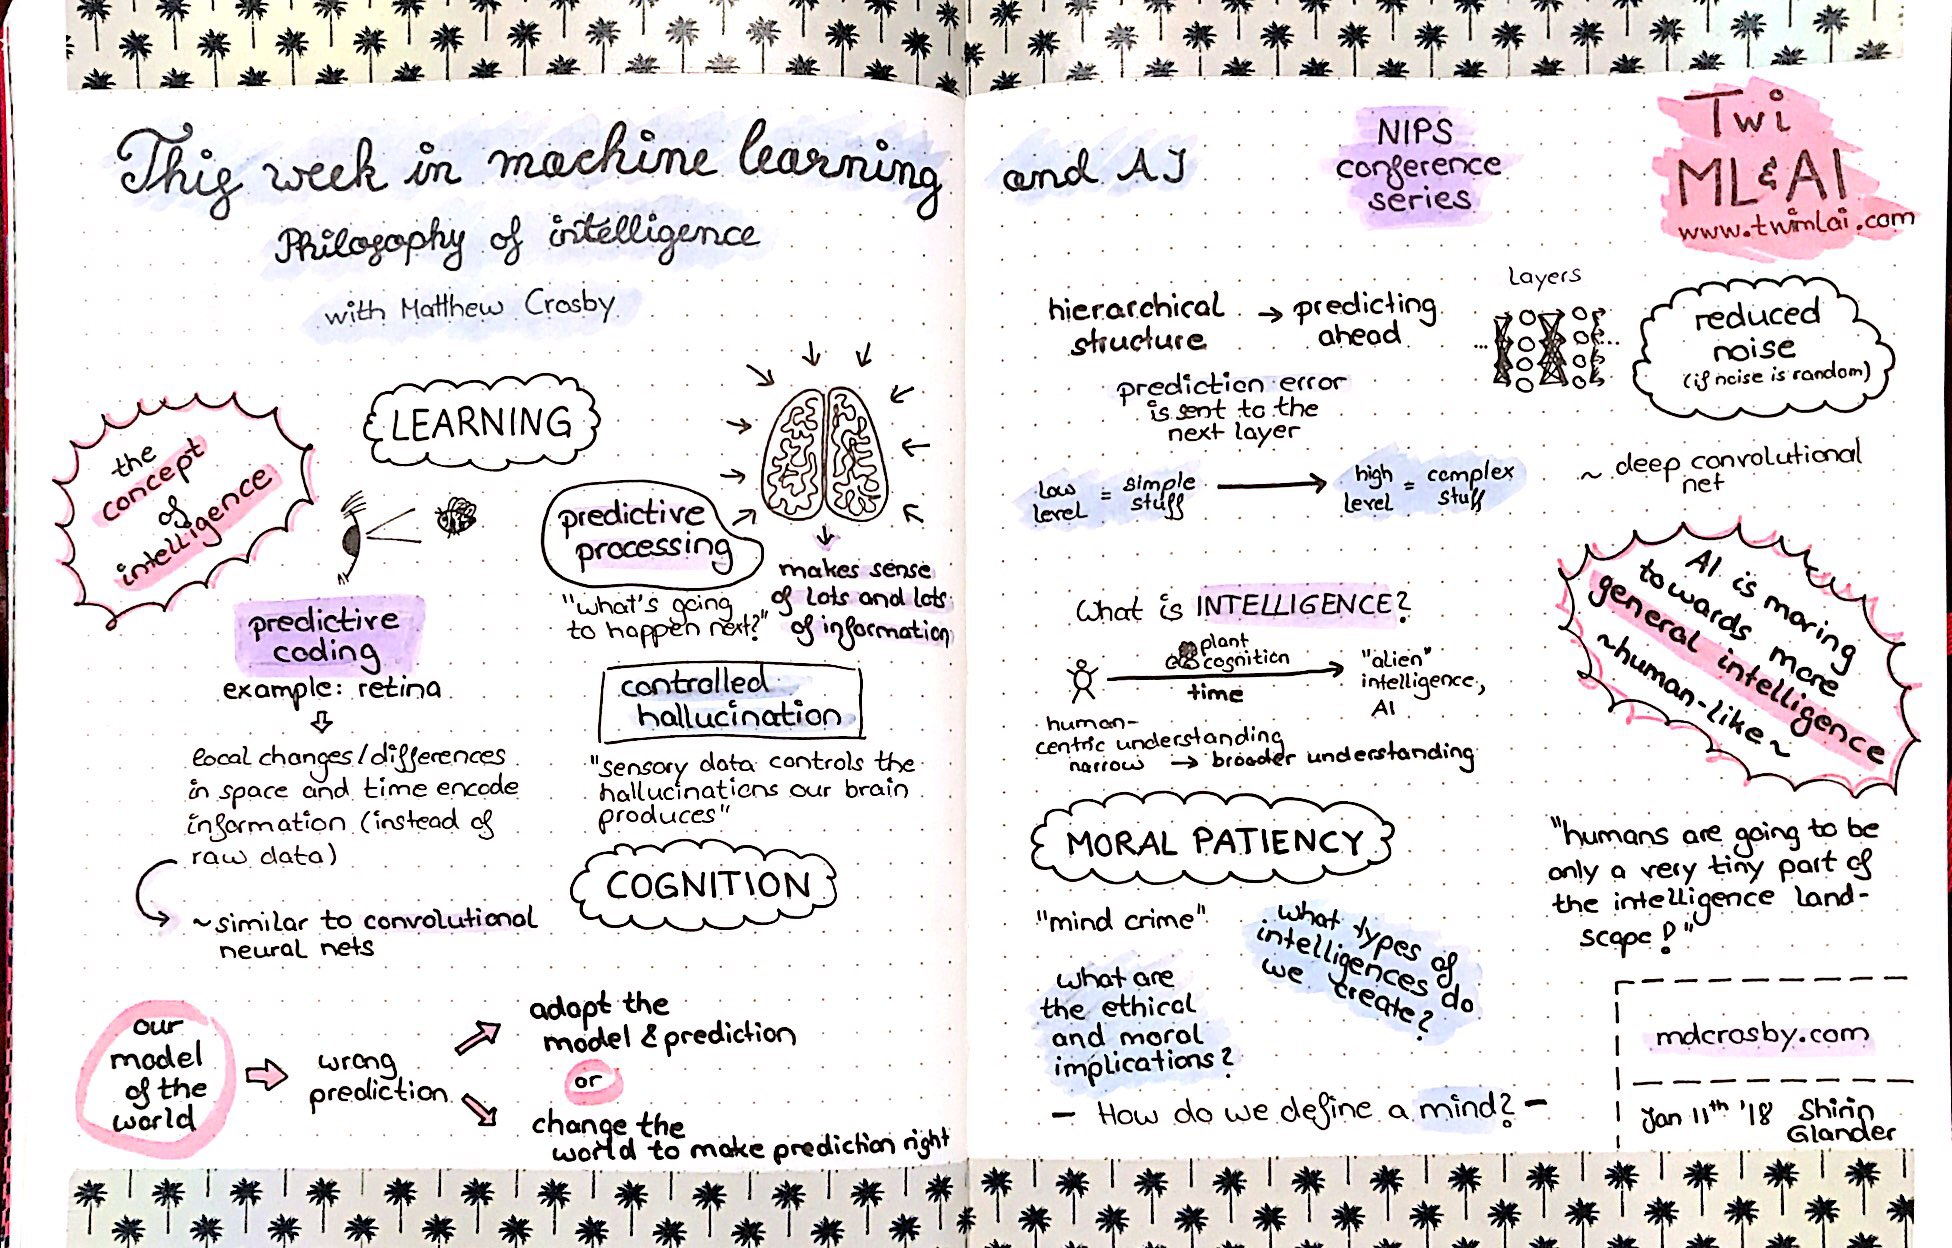 Sketchnotes from TWiMLAI talk #92: Philosophy of Intelligence with Matthew Crosby